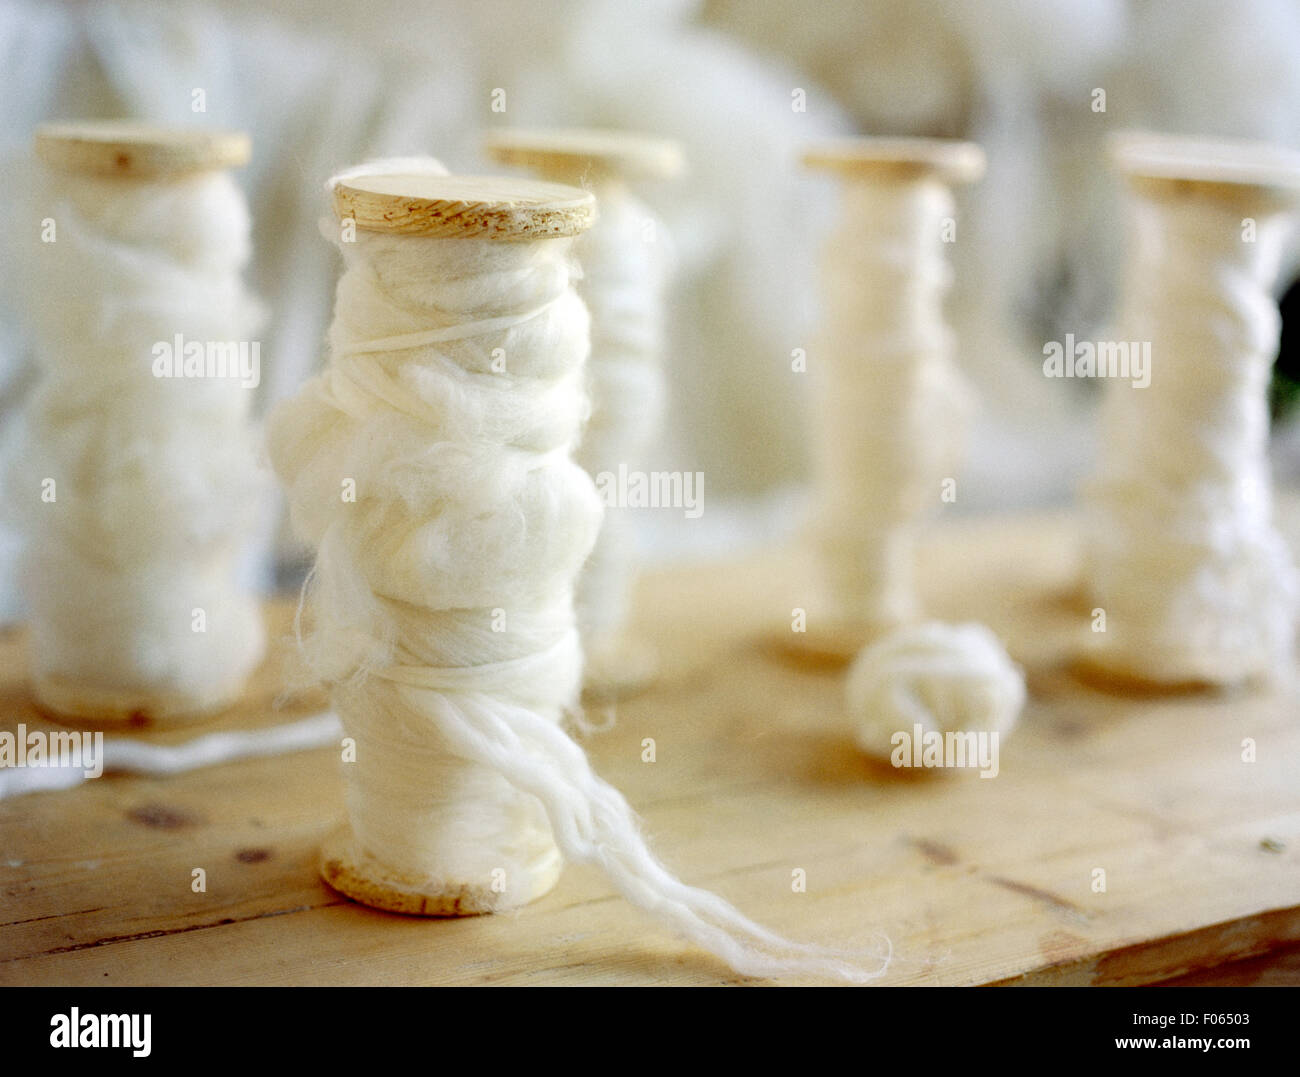 Spools of Wool - Stock Image